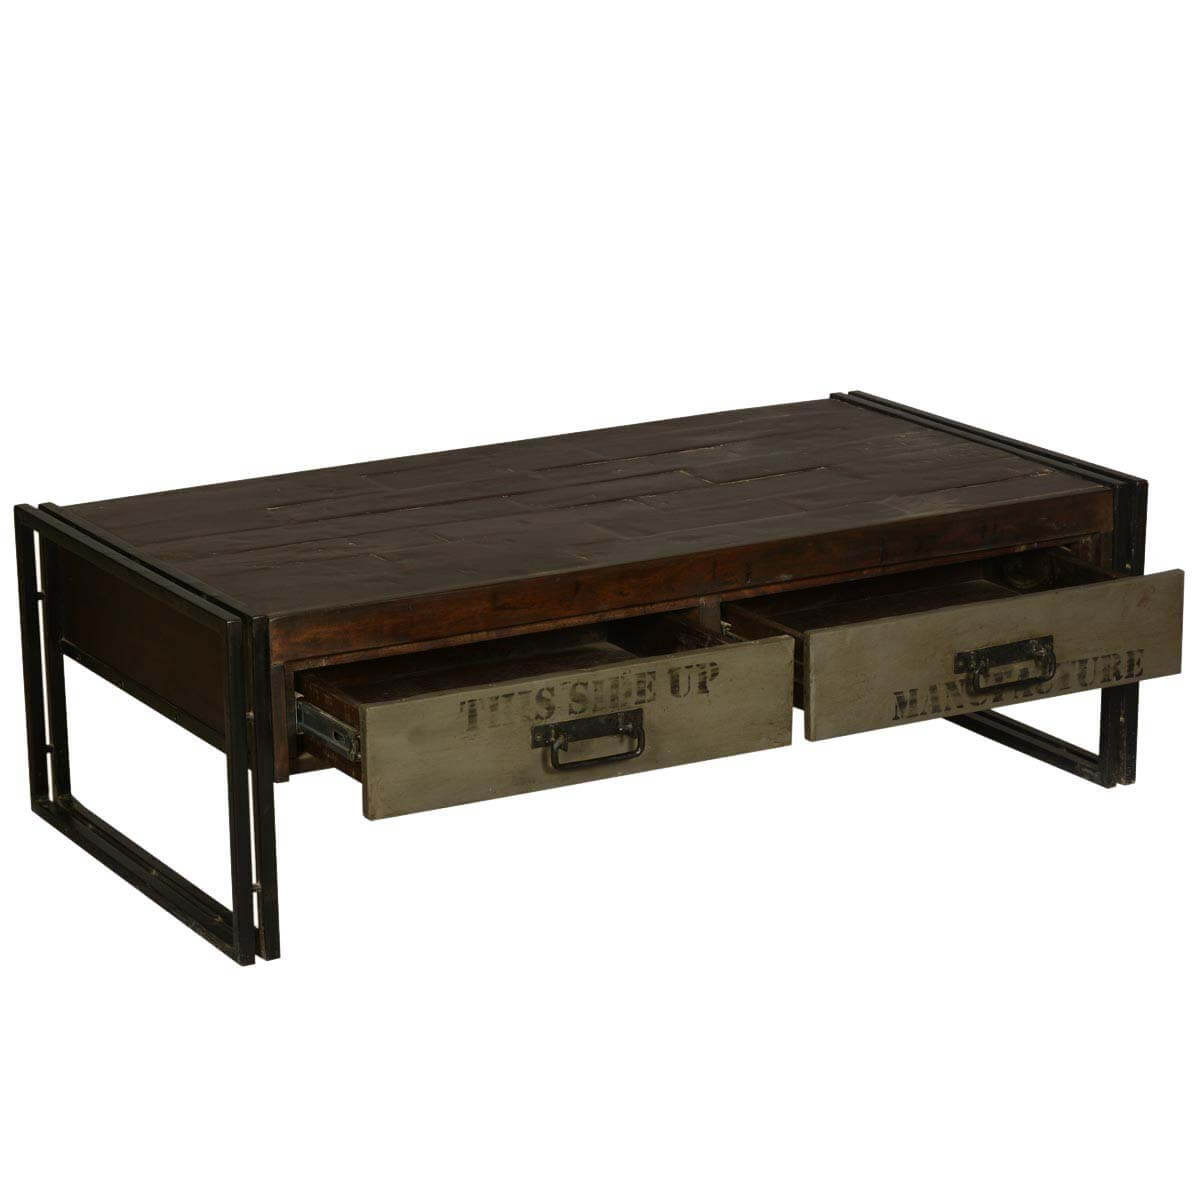 Philadelphia modern rustic reclaimed wood metal coffee table Rustic wood and metal coffee table